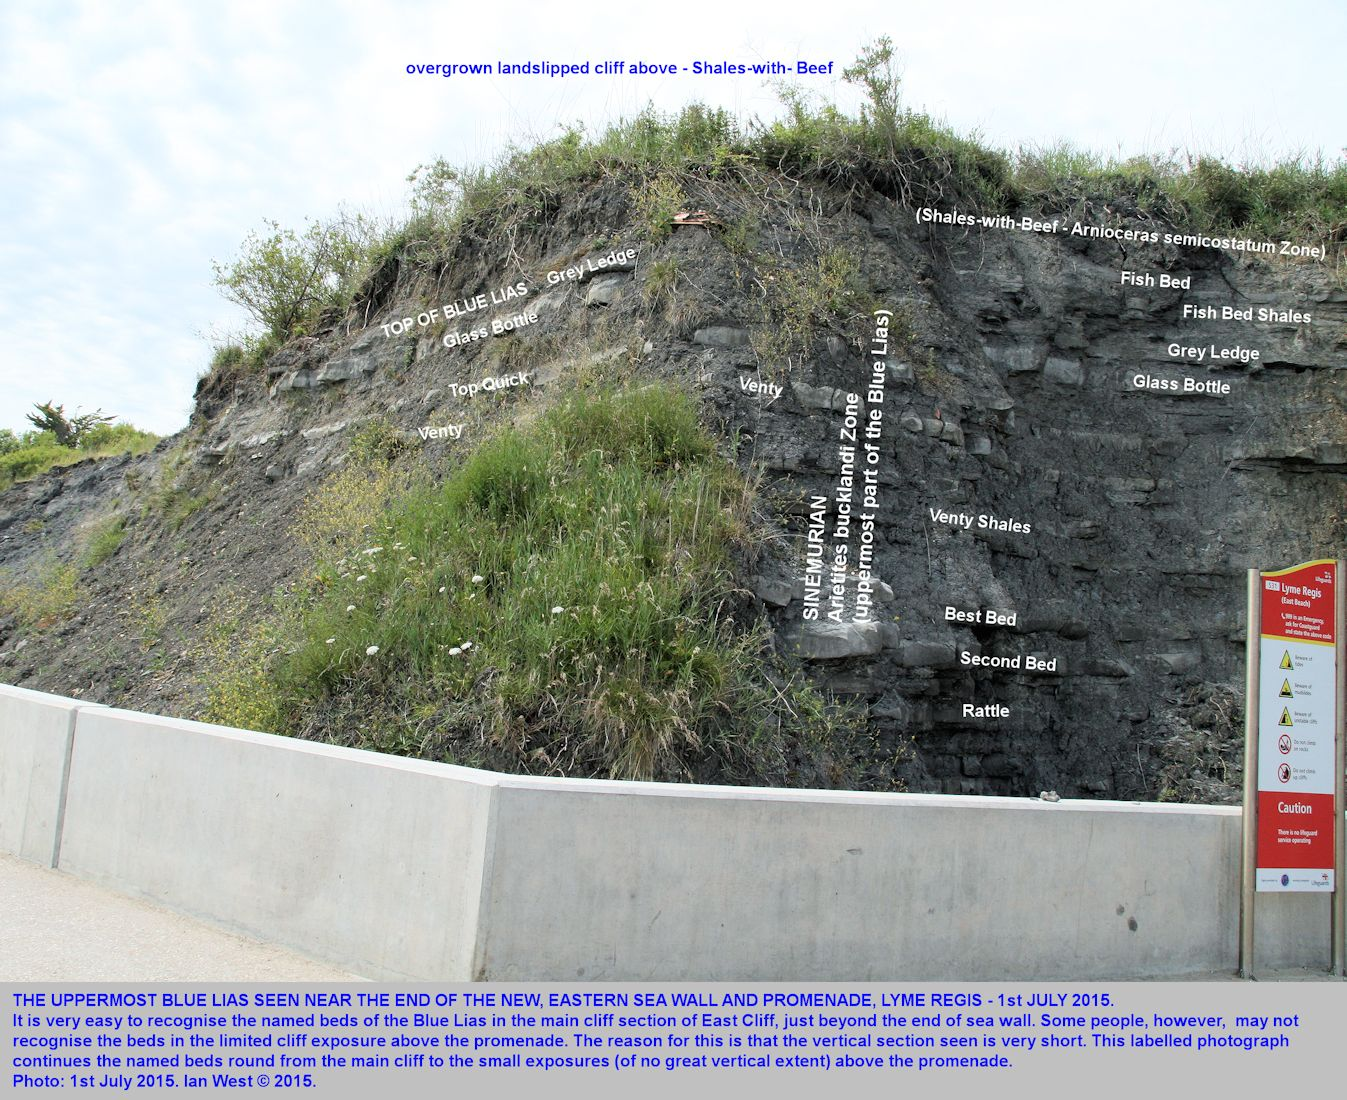 The far northeastern end of the new sea wall, Church Cliffs to East Cliff, Lyme Regis, Dorset, showing named of uppermost Blue Lias, 1st July 2015